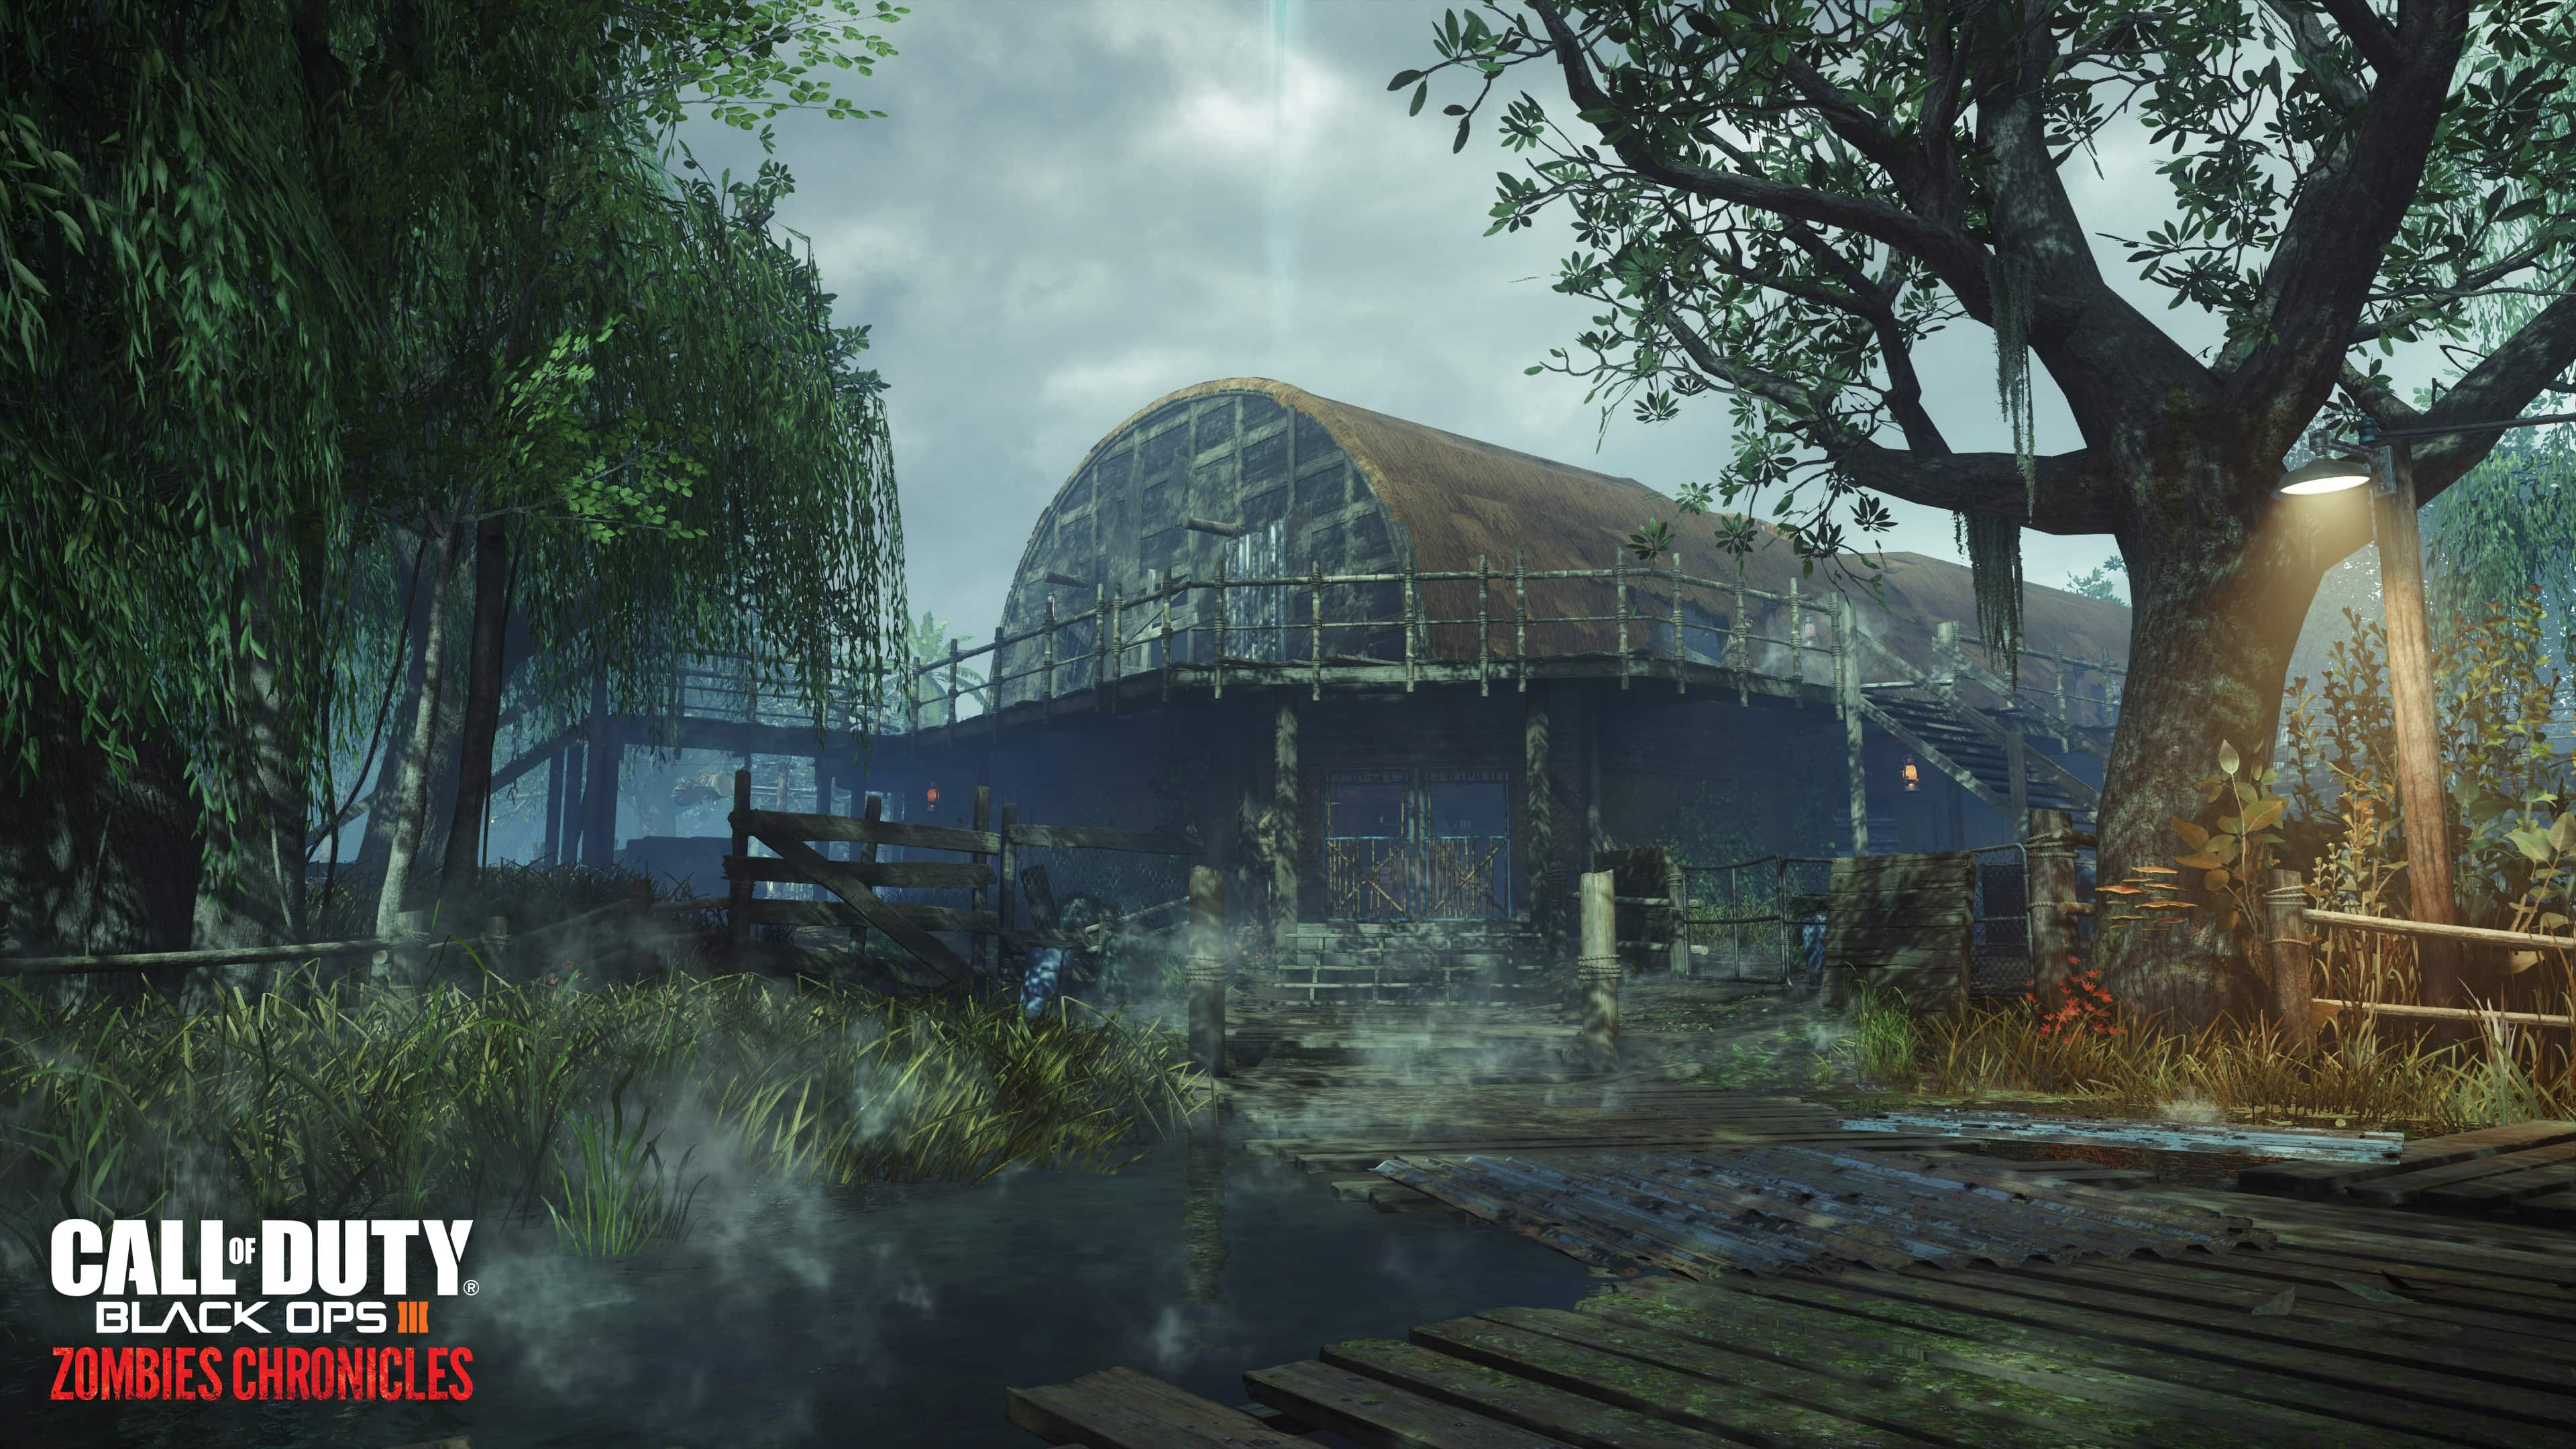 Call of Duty Black Ops III Zombies Chronicles_Shi No Numa map_environment shot